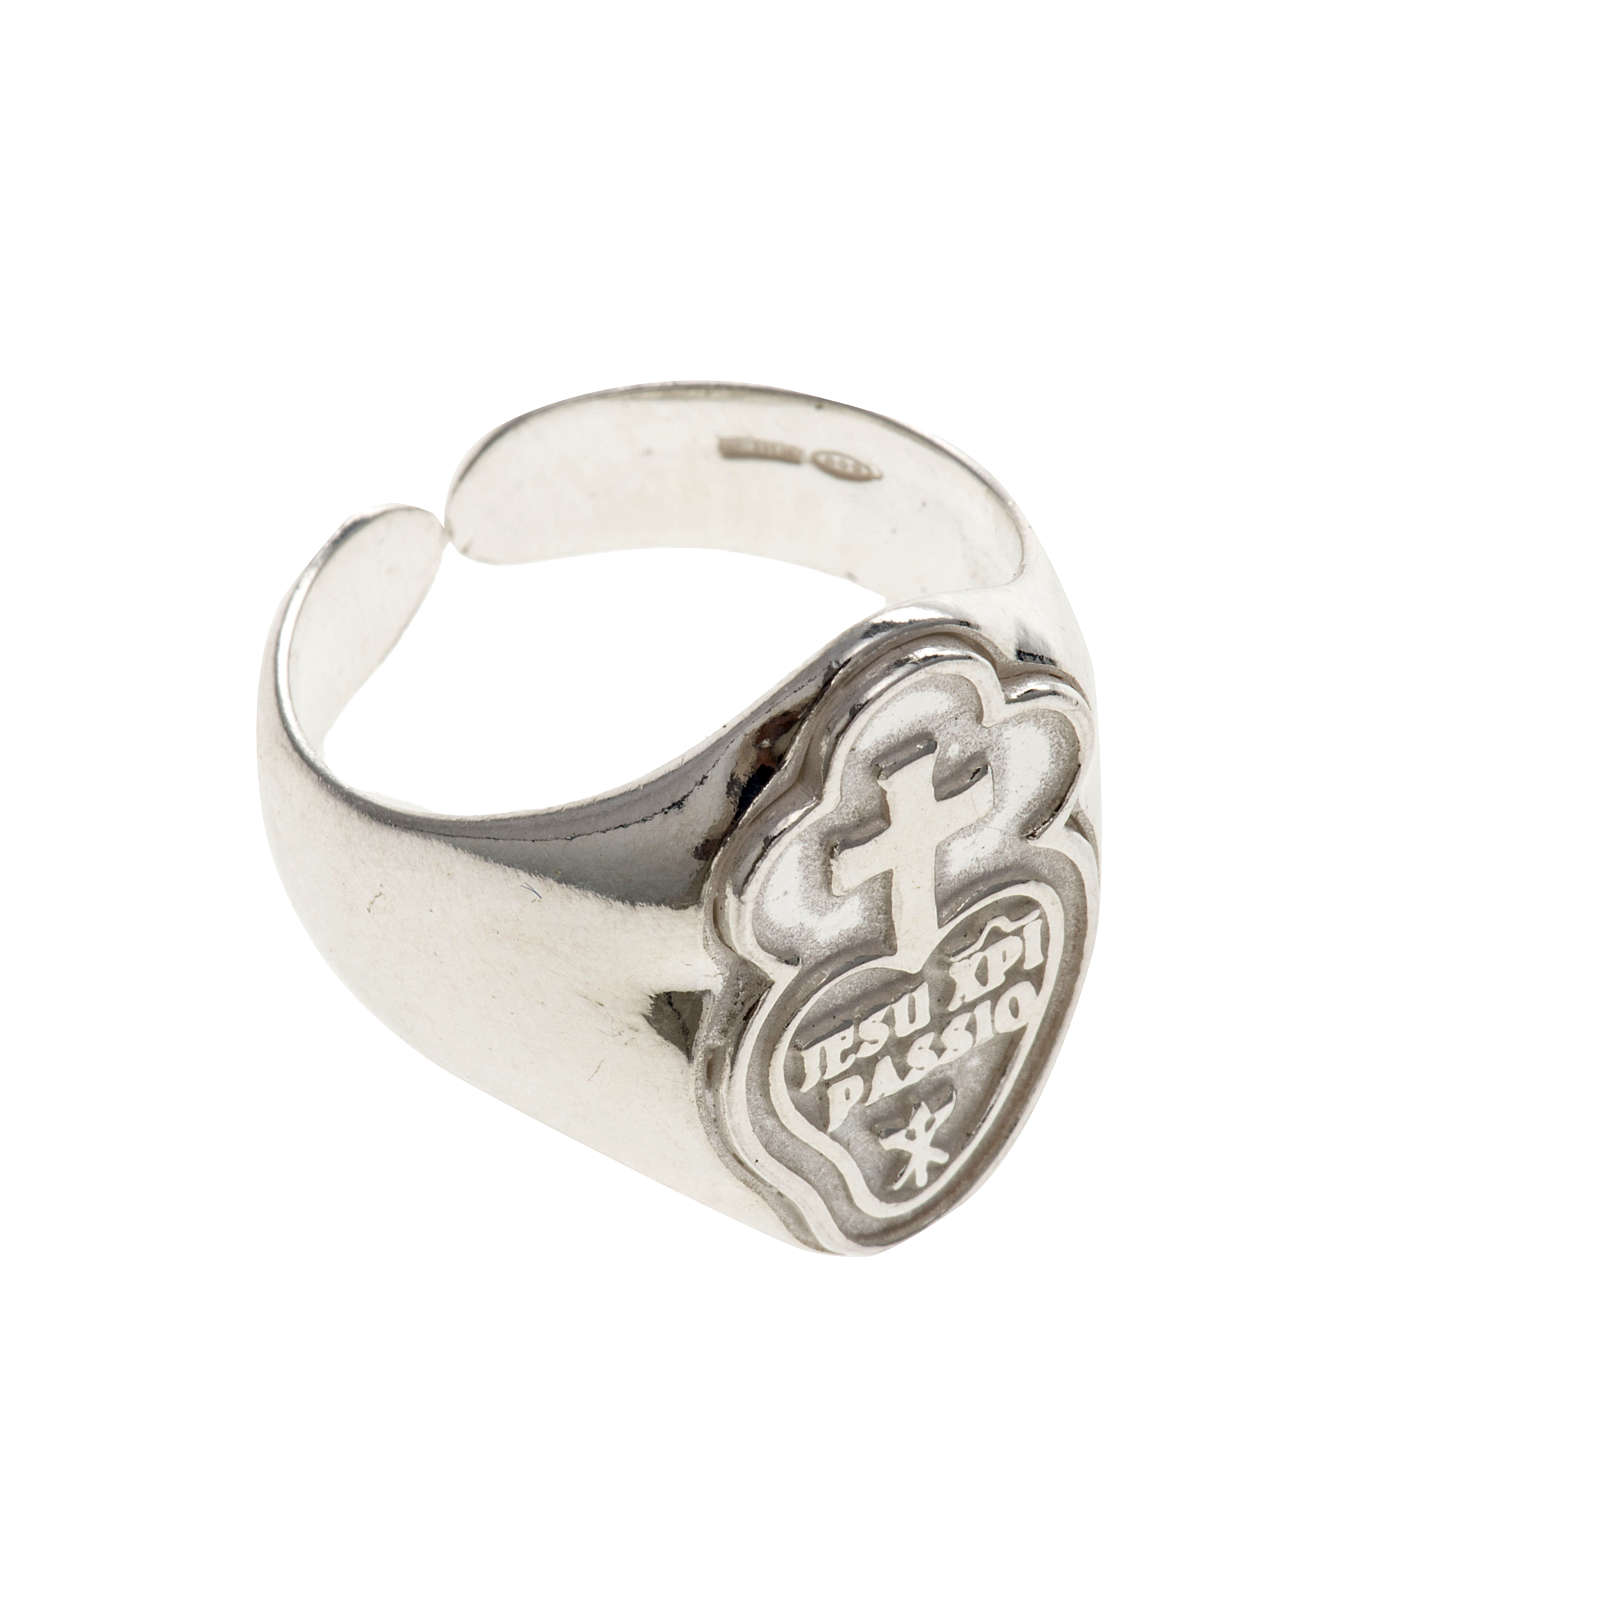 Bishop's ring made of 800 silver, Passionists 3